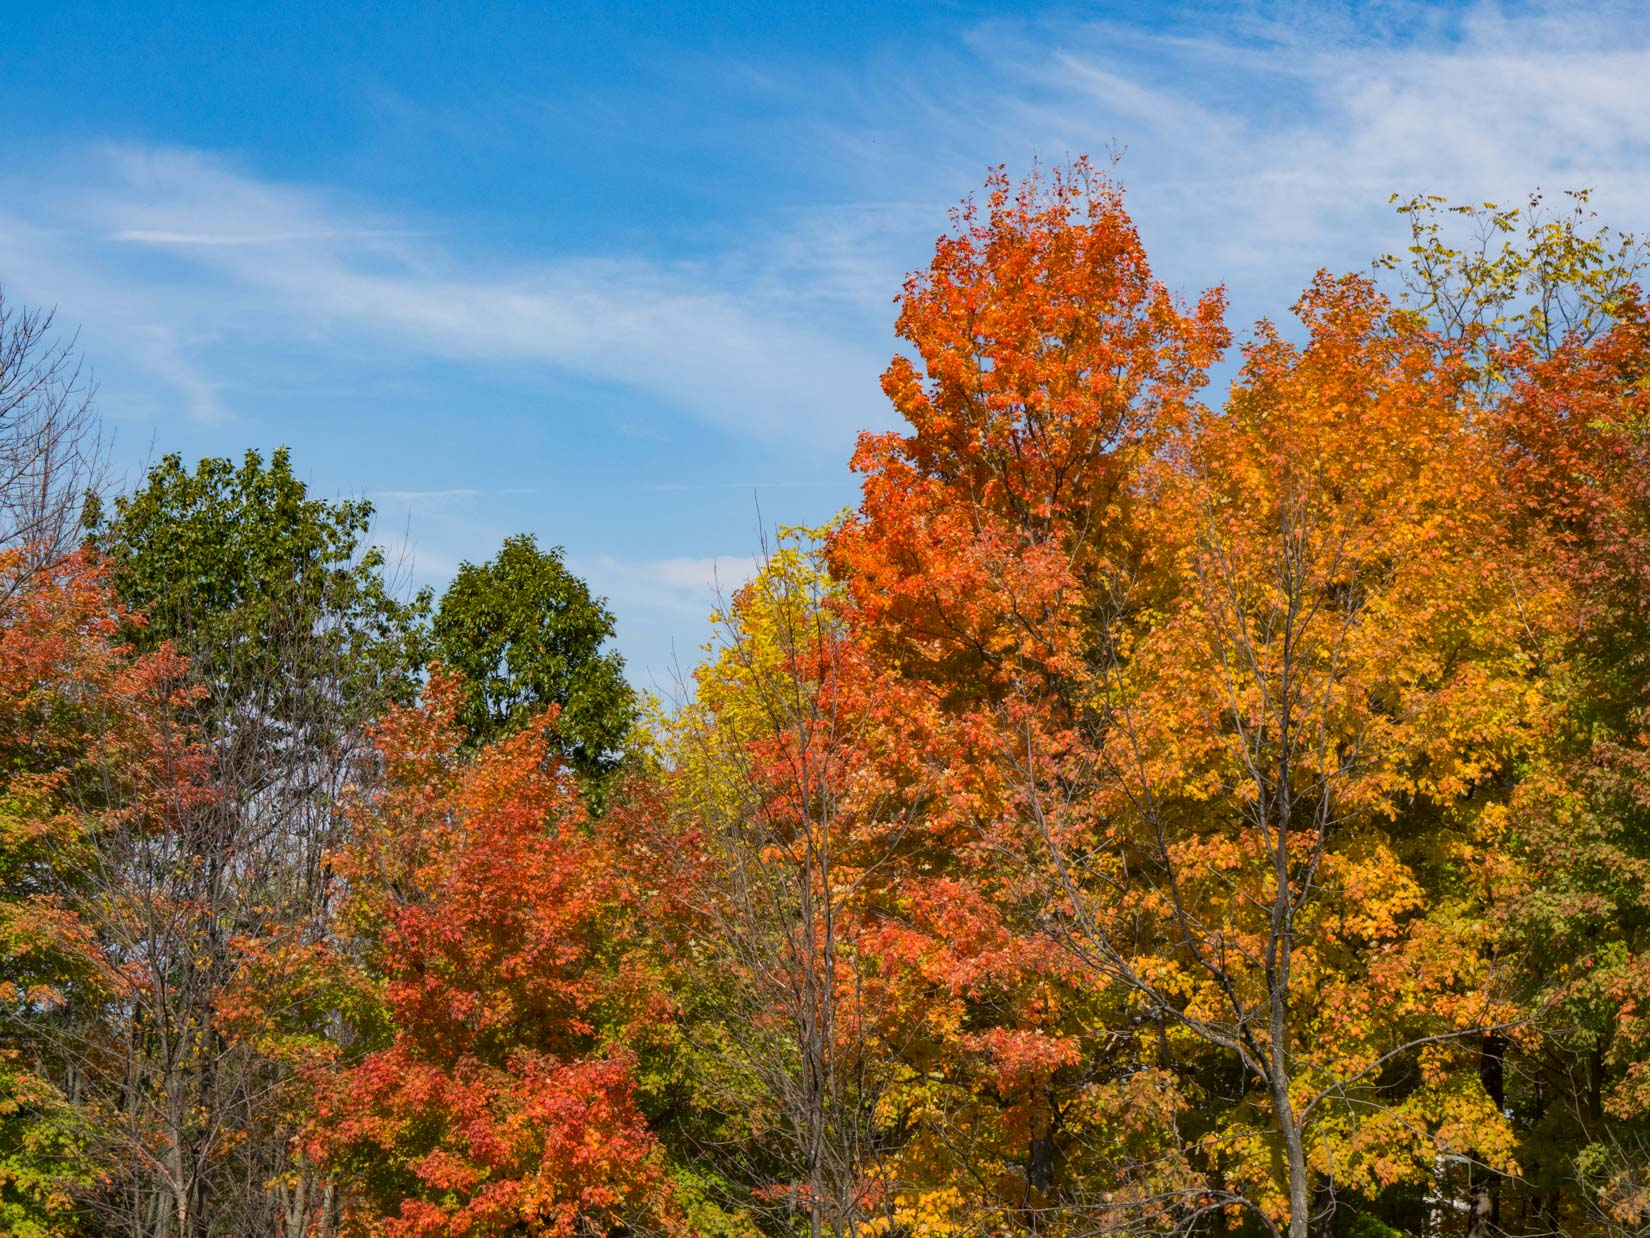 Trees With Colorful Fall Leaves